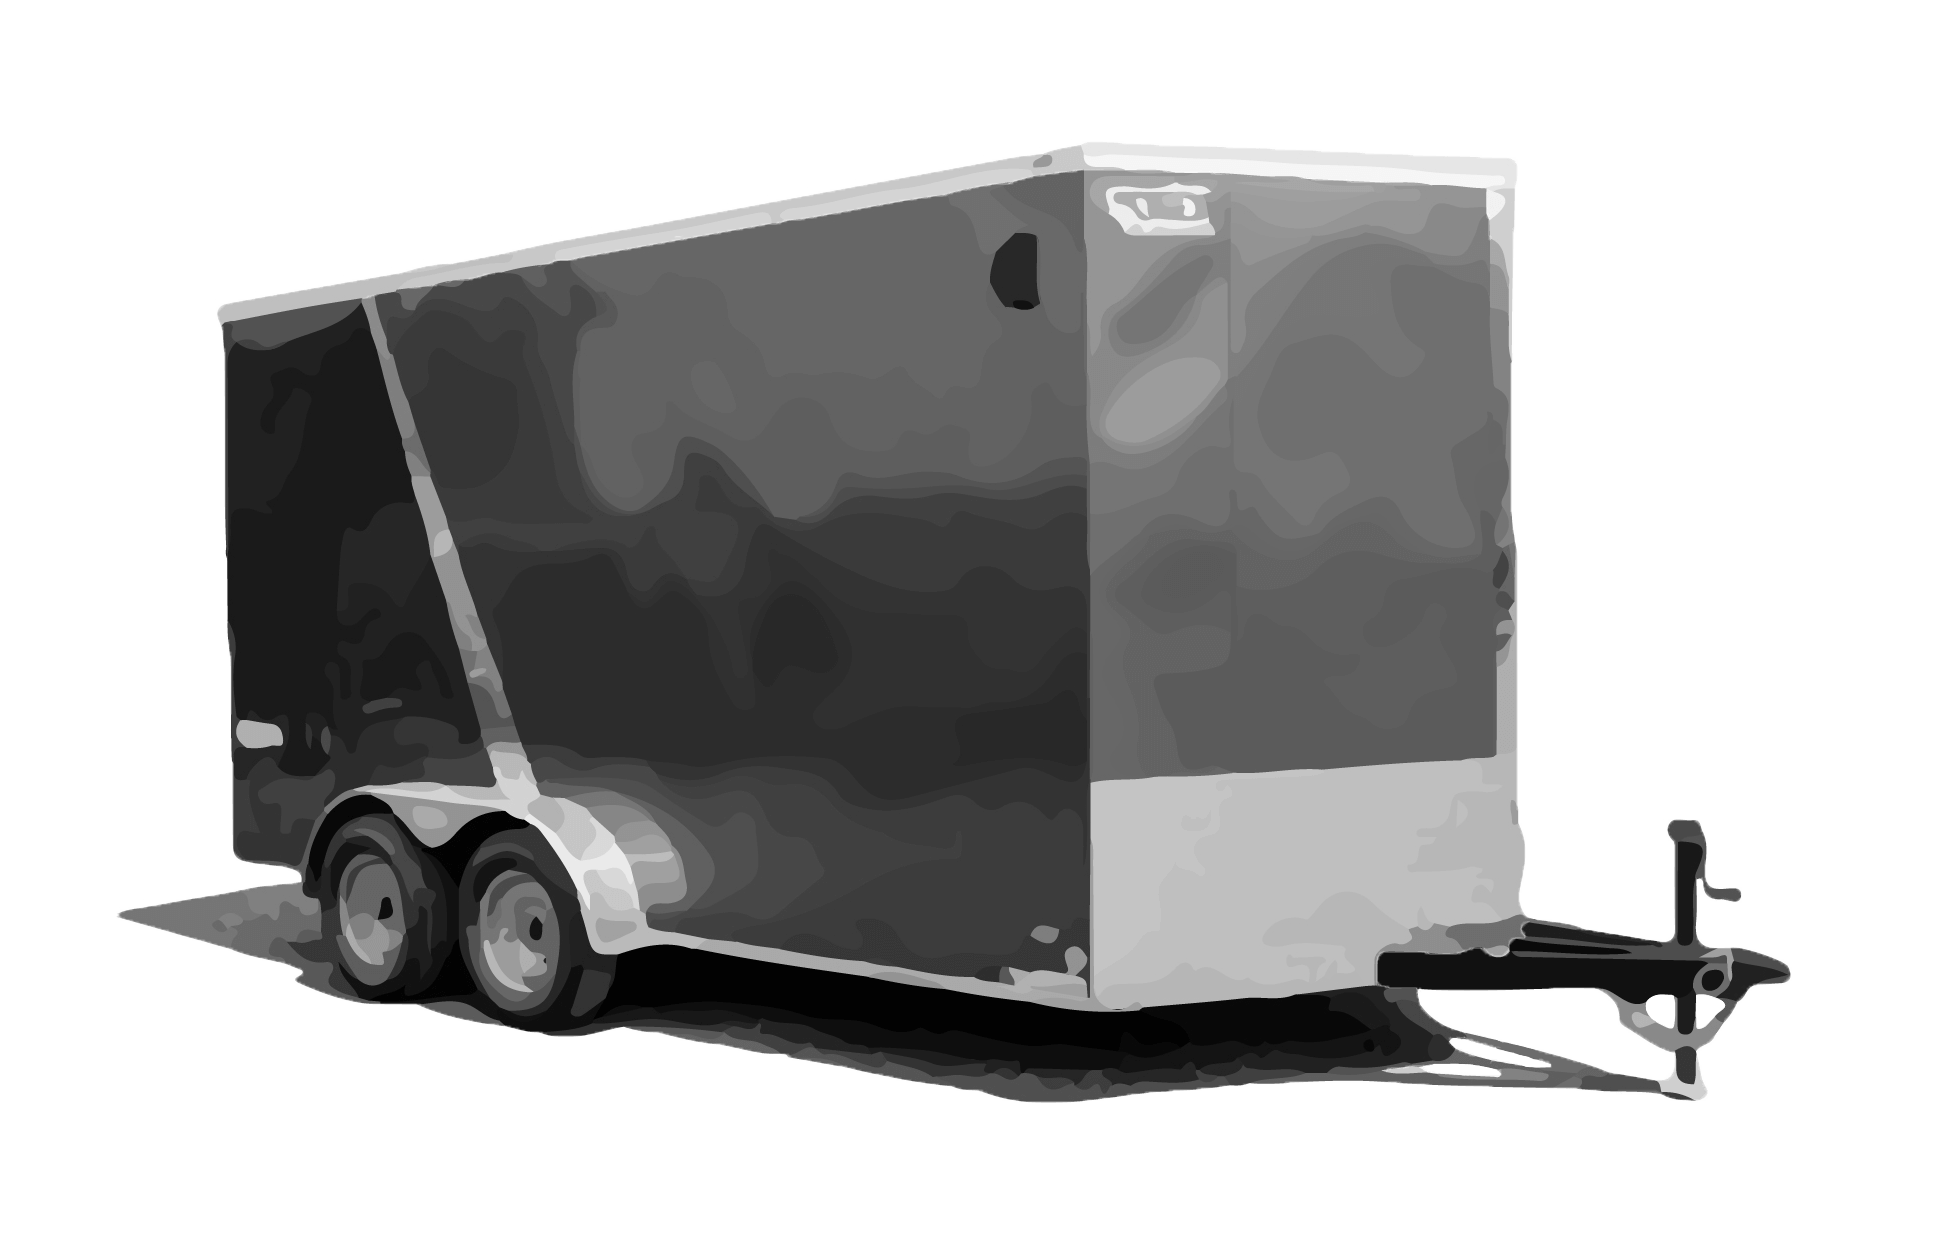 Bravo-Scout-Enclosed-Cargo-Trailer-7'x14'x7K-SC714TA2-Paint Black and White